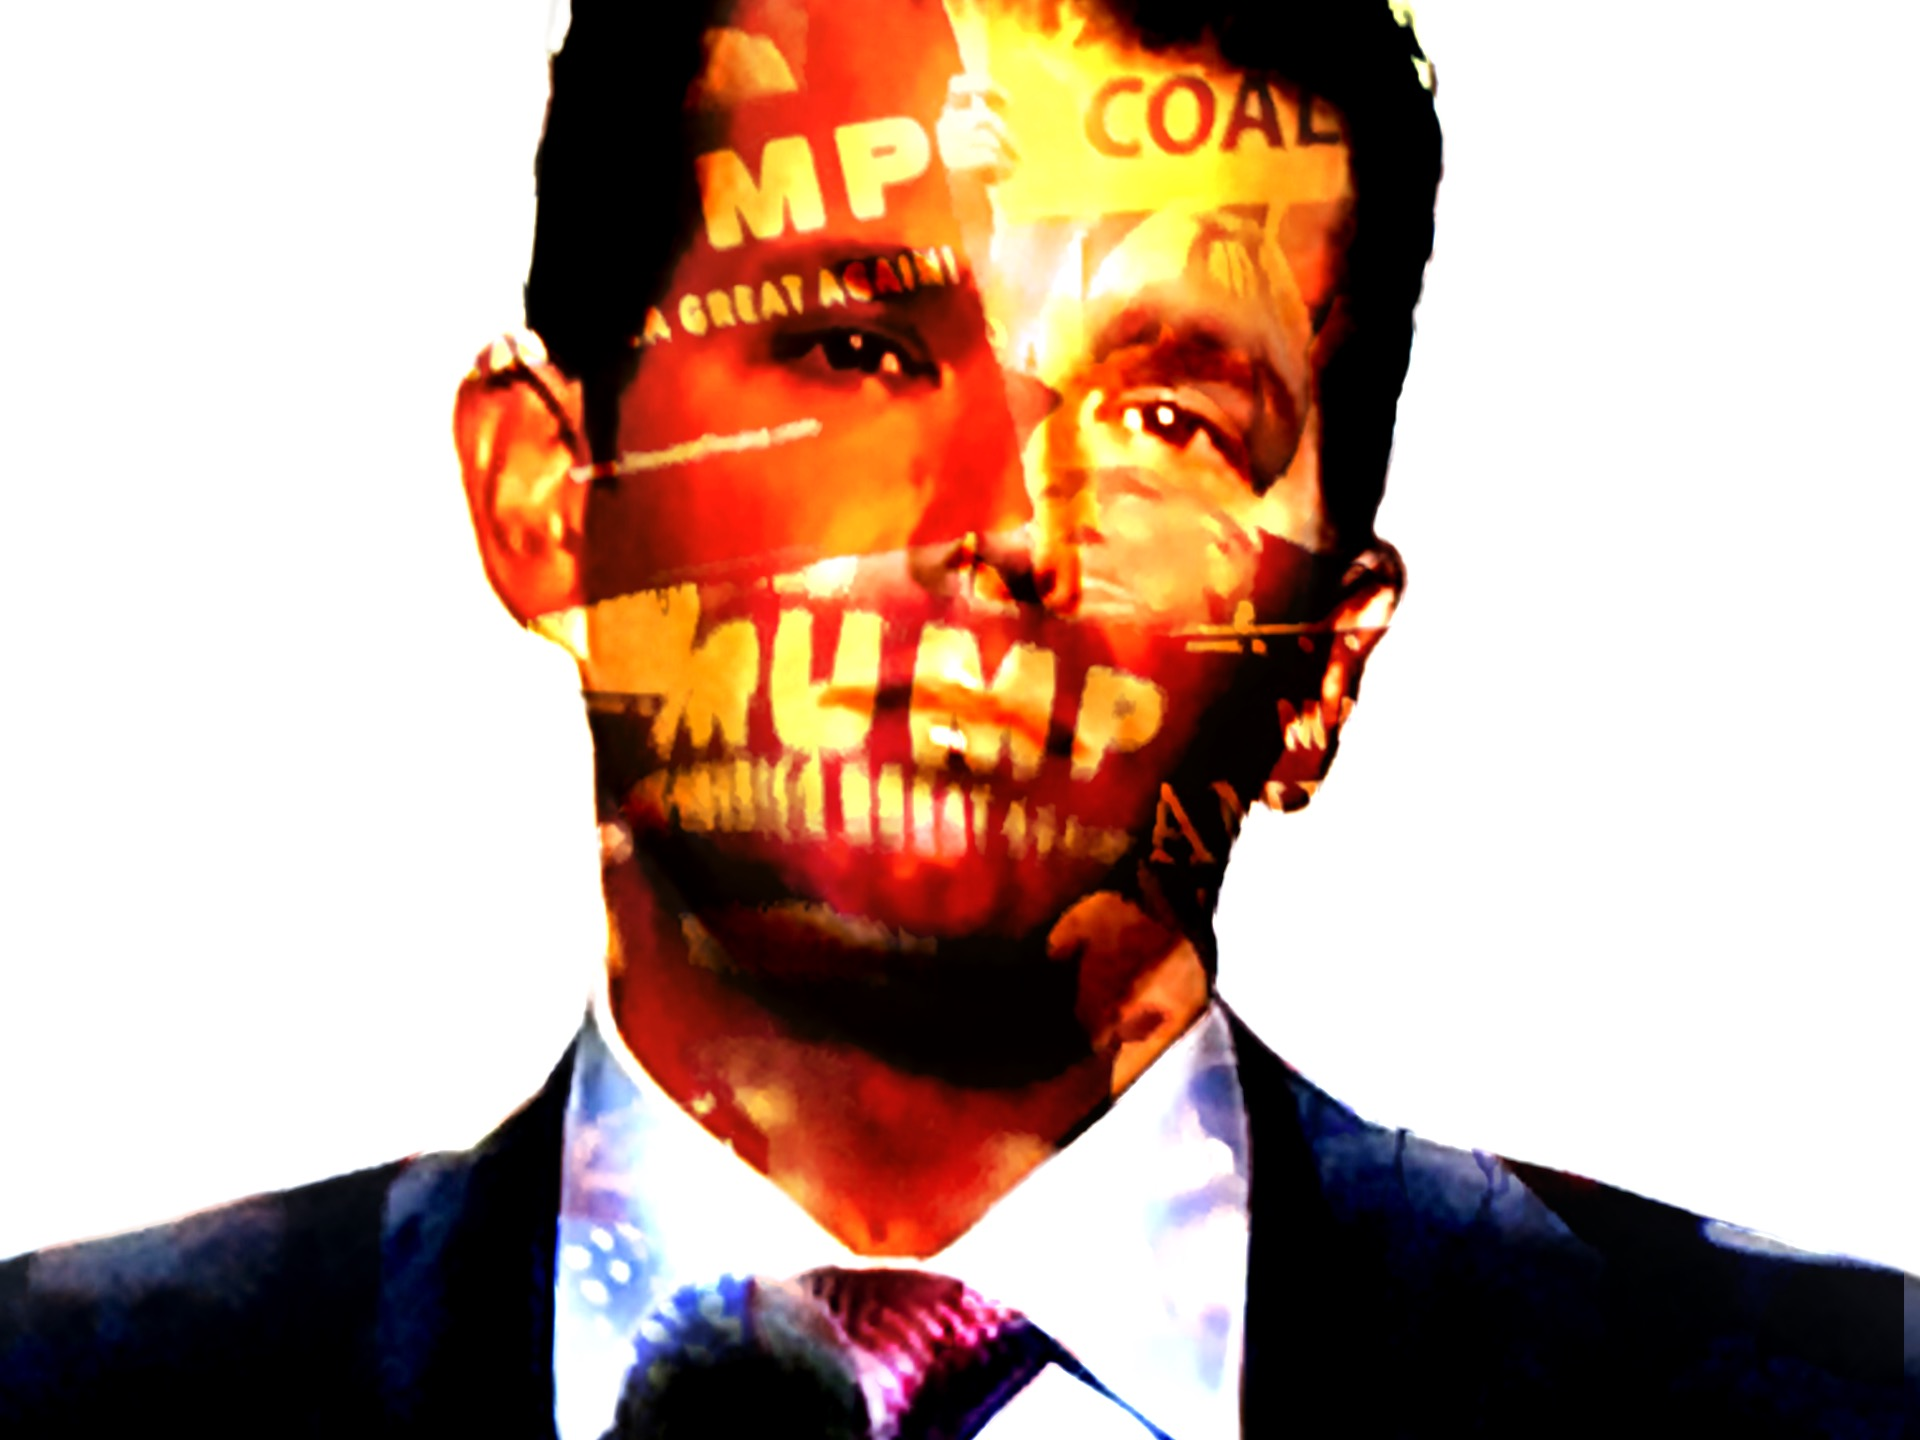 Donald Trump Jr. speaks at the RNC. (Composite image by Biz Herman/GroundTruth)